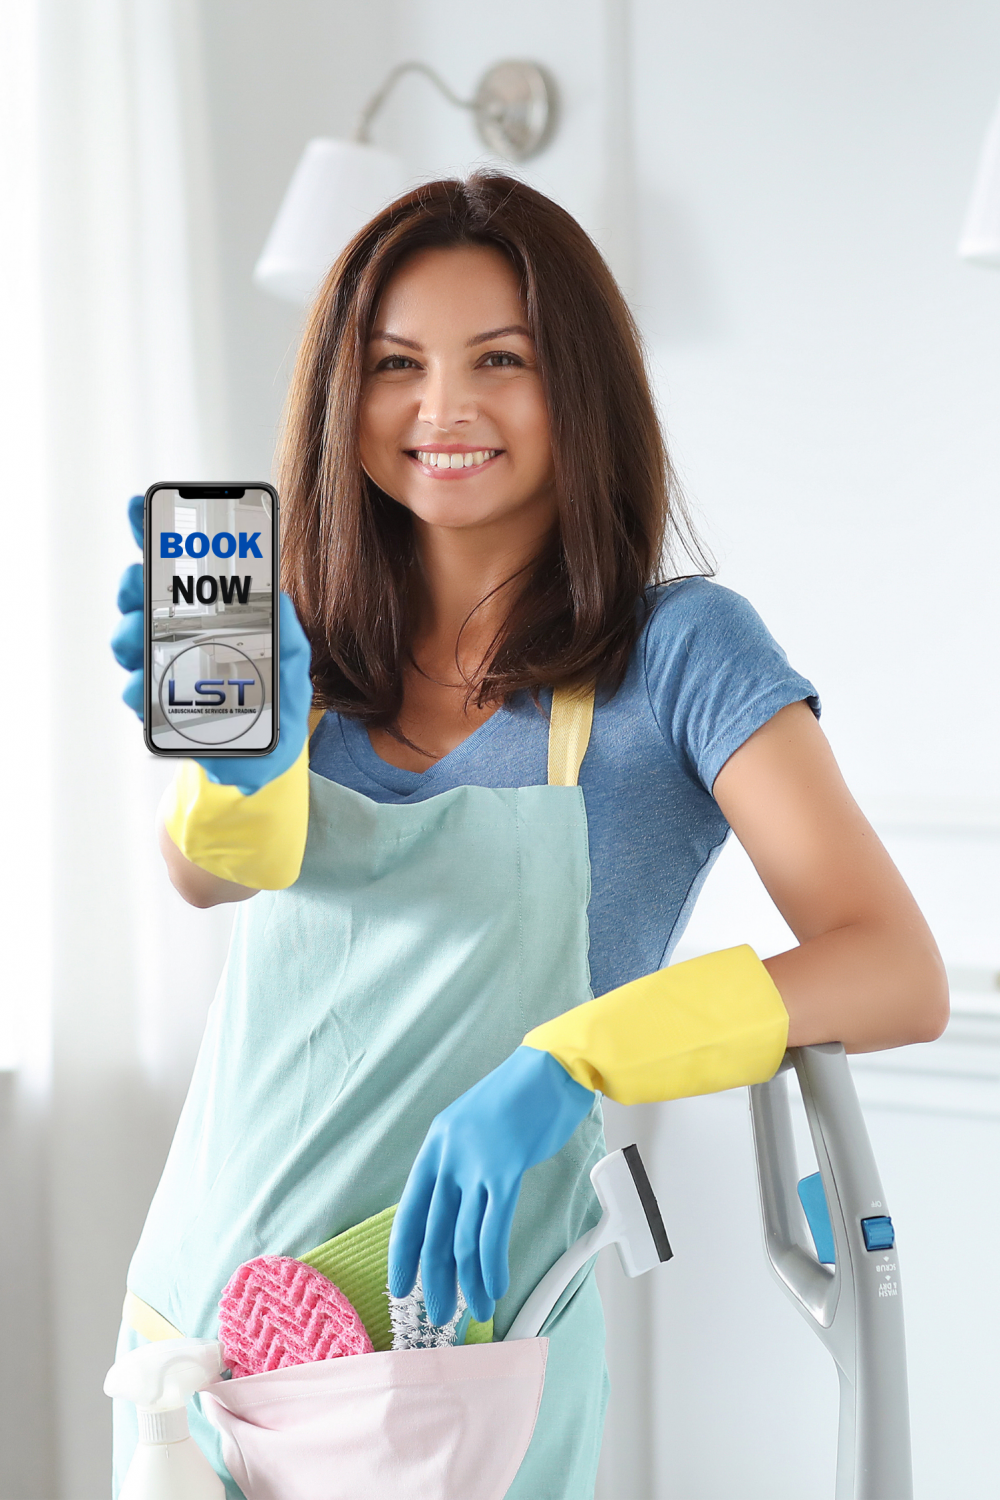 LST Cleaning Service - Book now